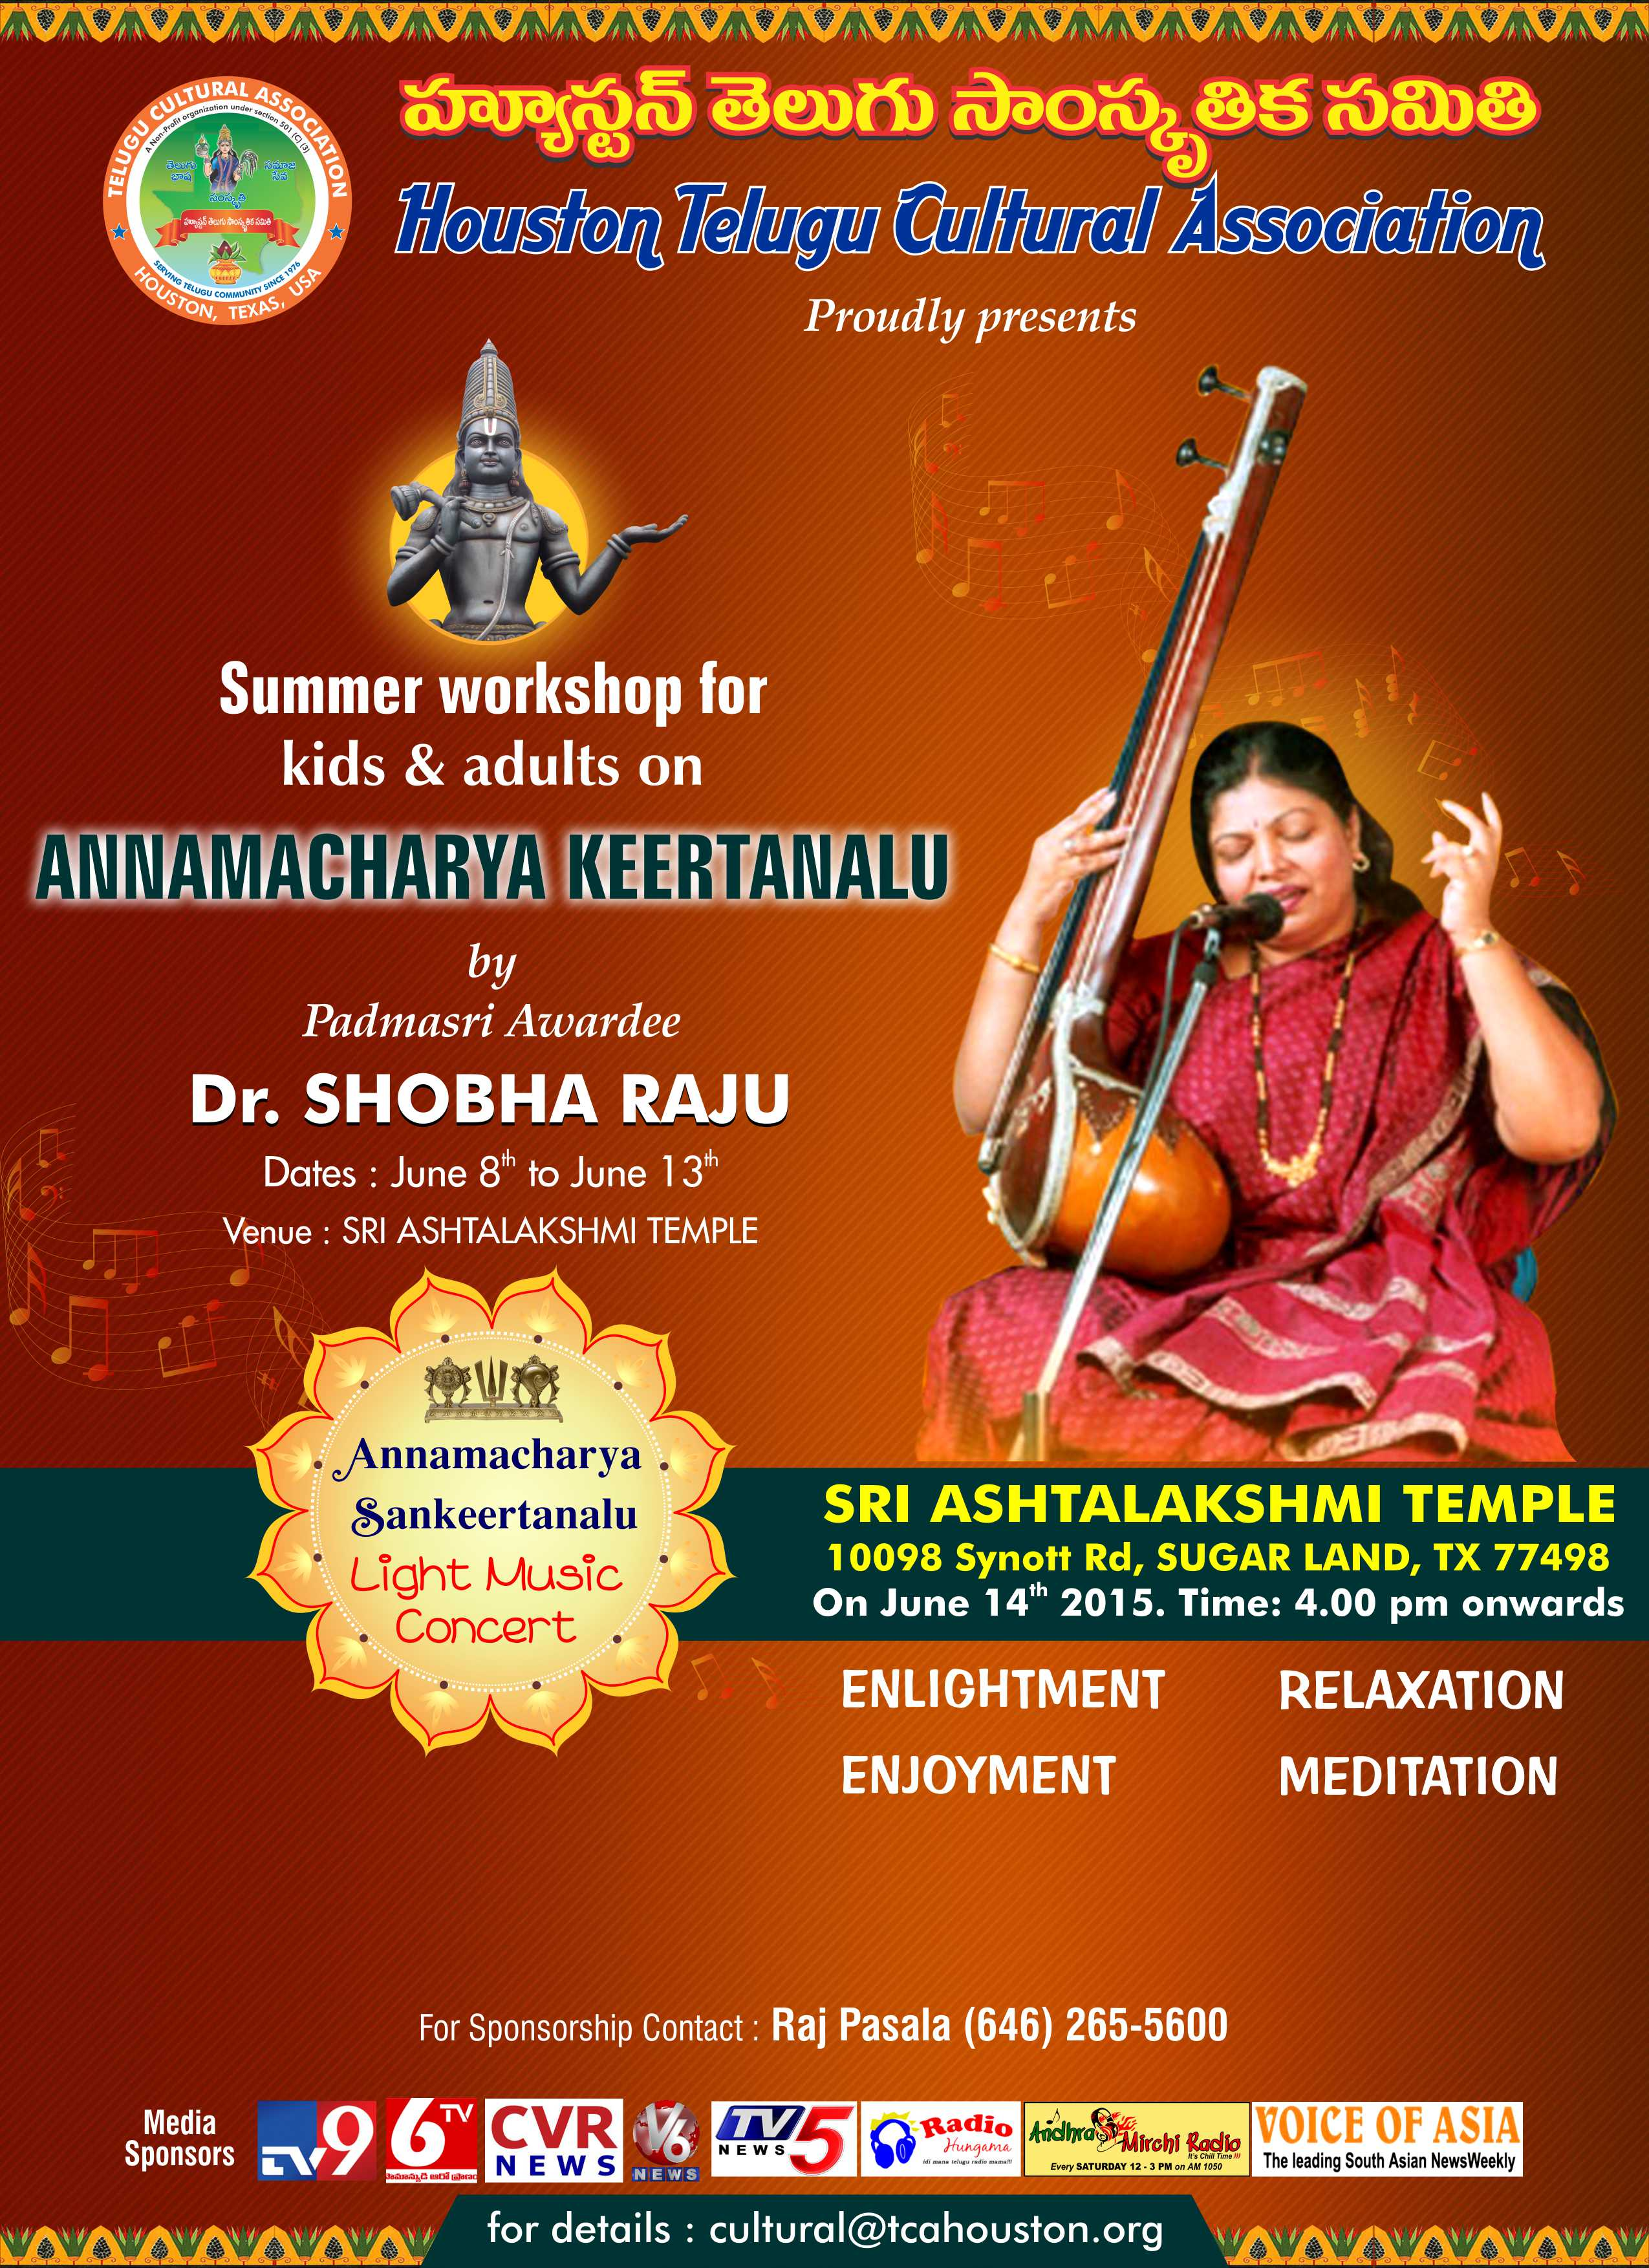 TCA Summer Workshop & Concert by Padmasri Dr.Shobha Raju garu (June 8th - June 14th)